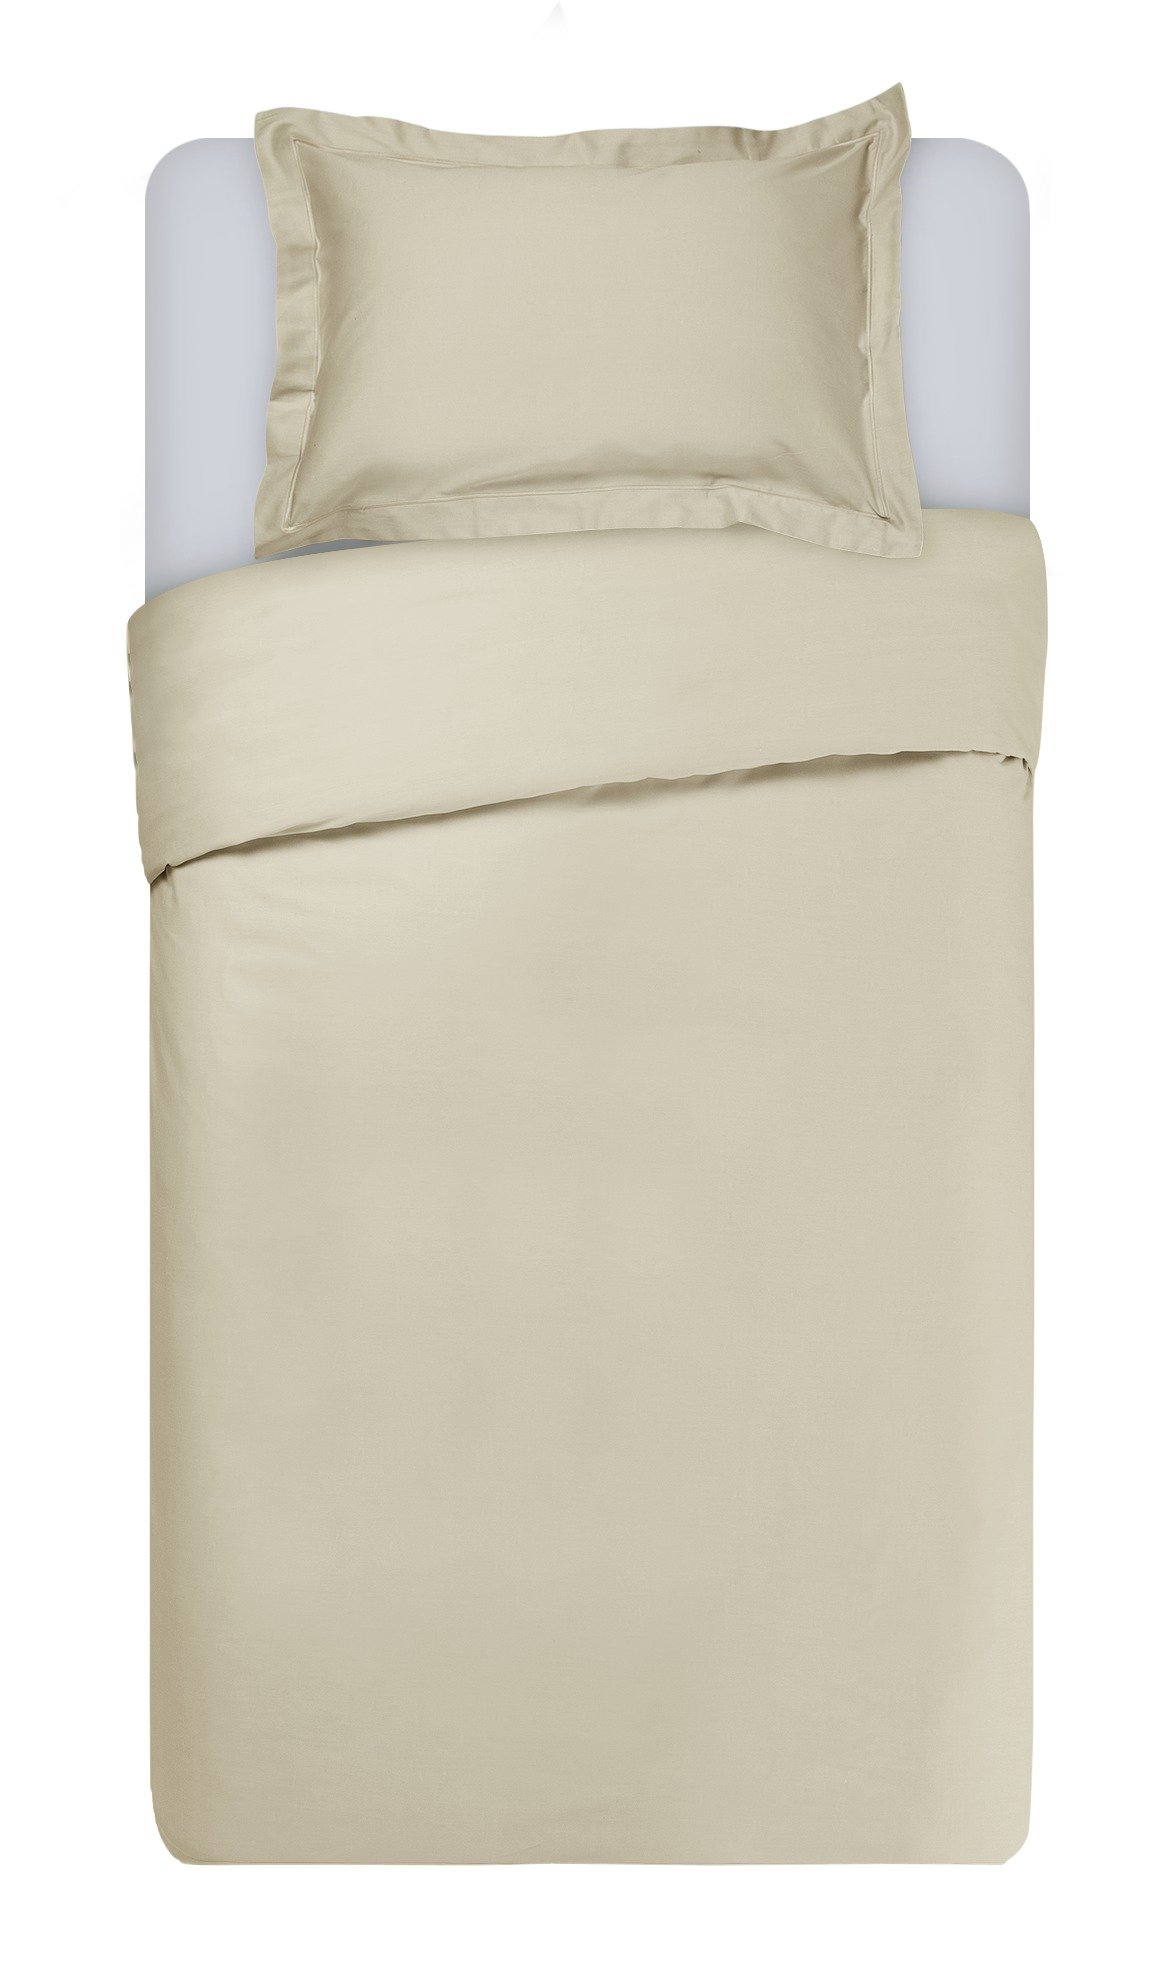 heart-of-house-ivory-400-tc-bedding-set-single